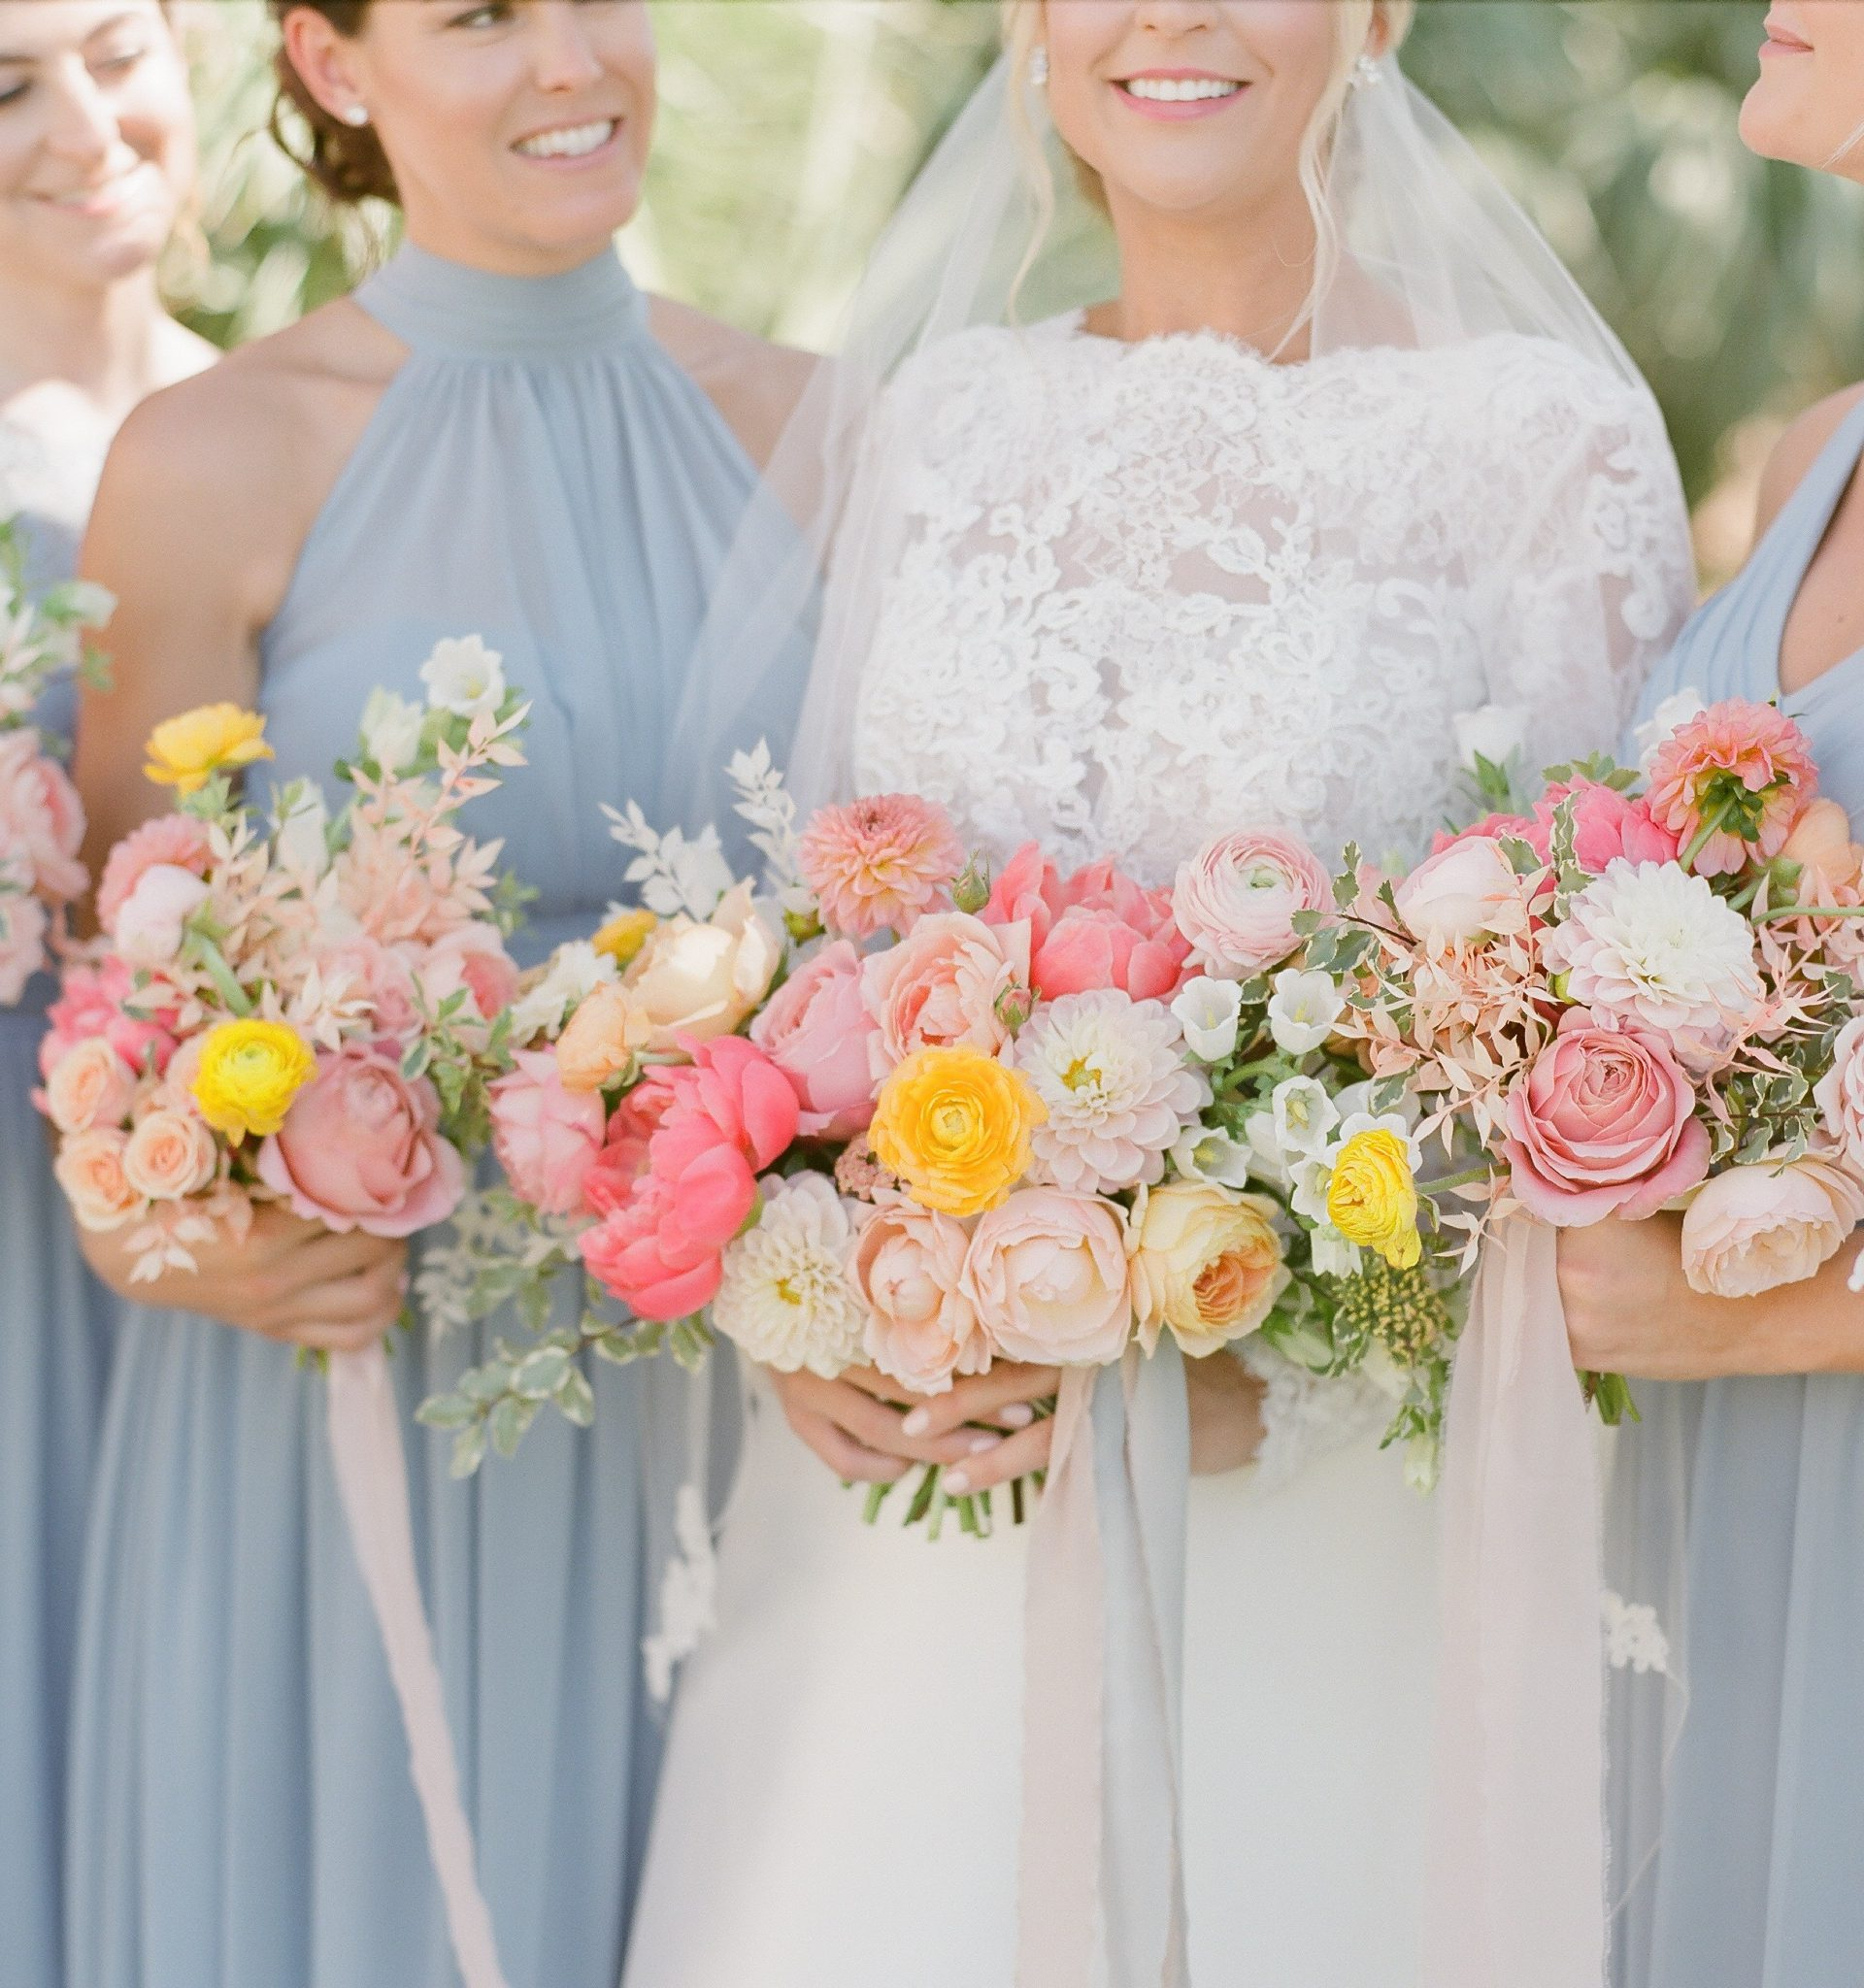 Boutique Wedding Floral Design & Styling in Savannah, Georgia